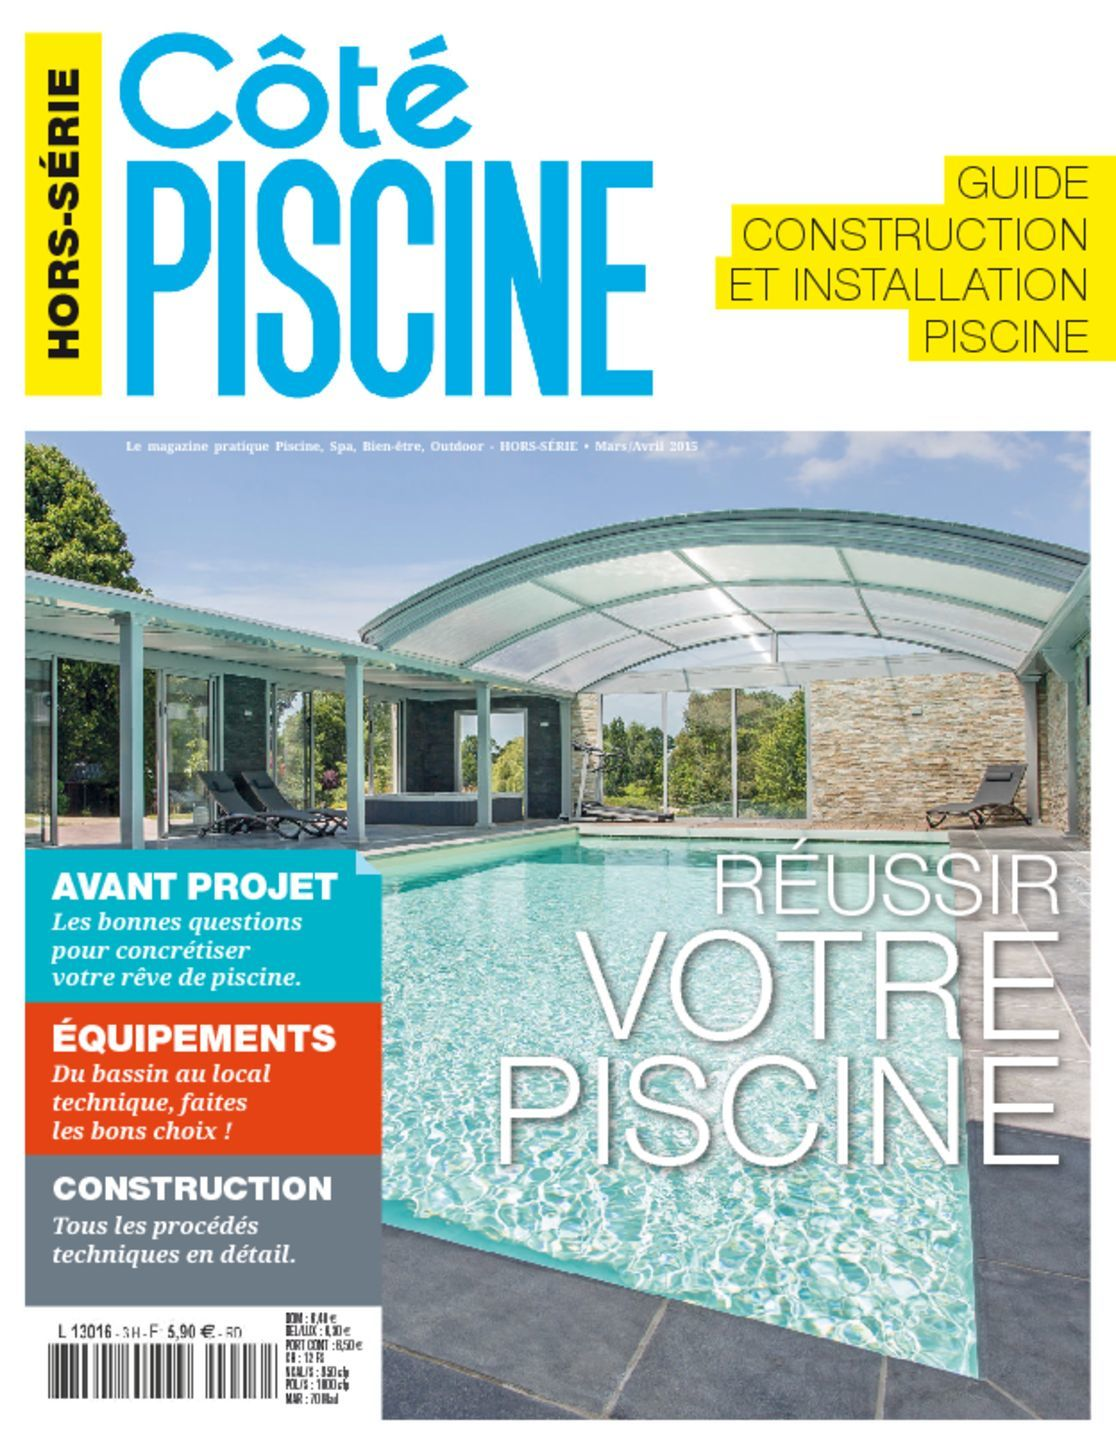 Piscin Guide Construction Et Installation Piscine Magazine Digital